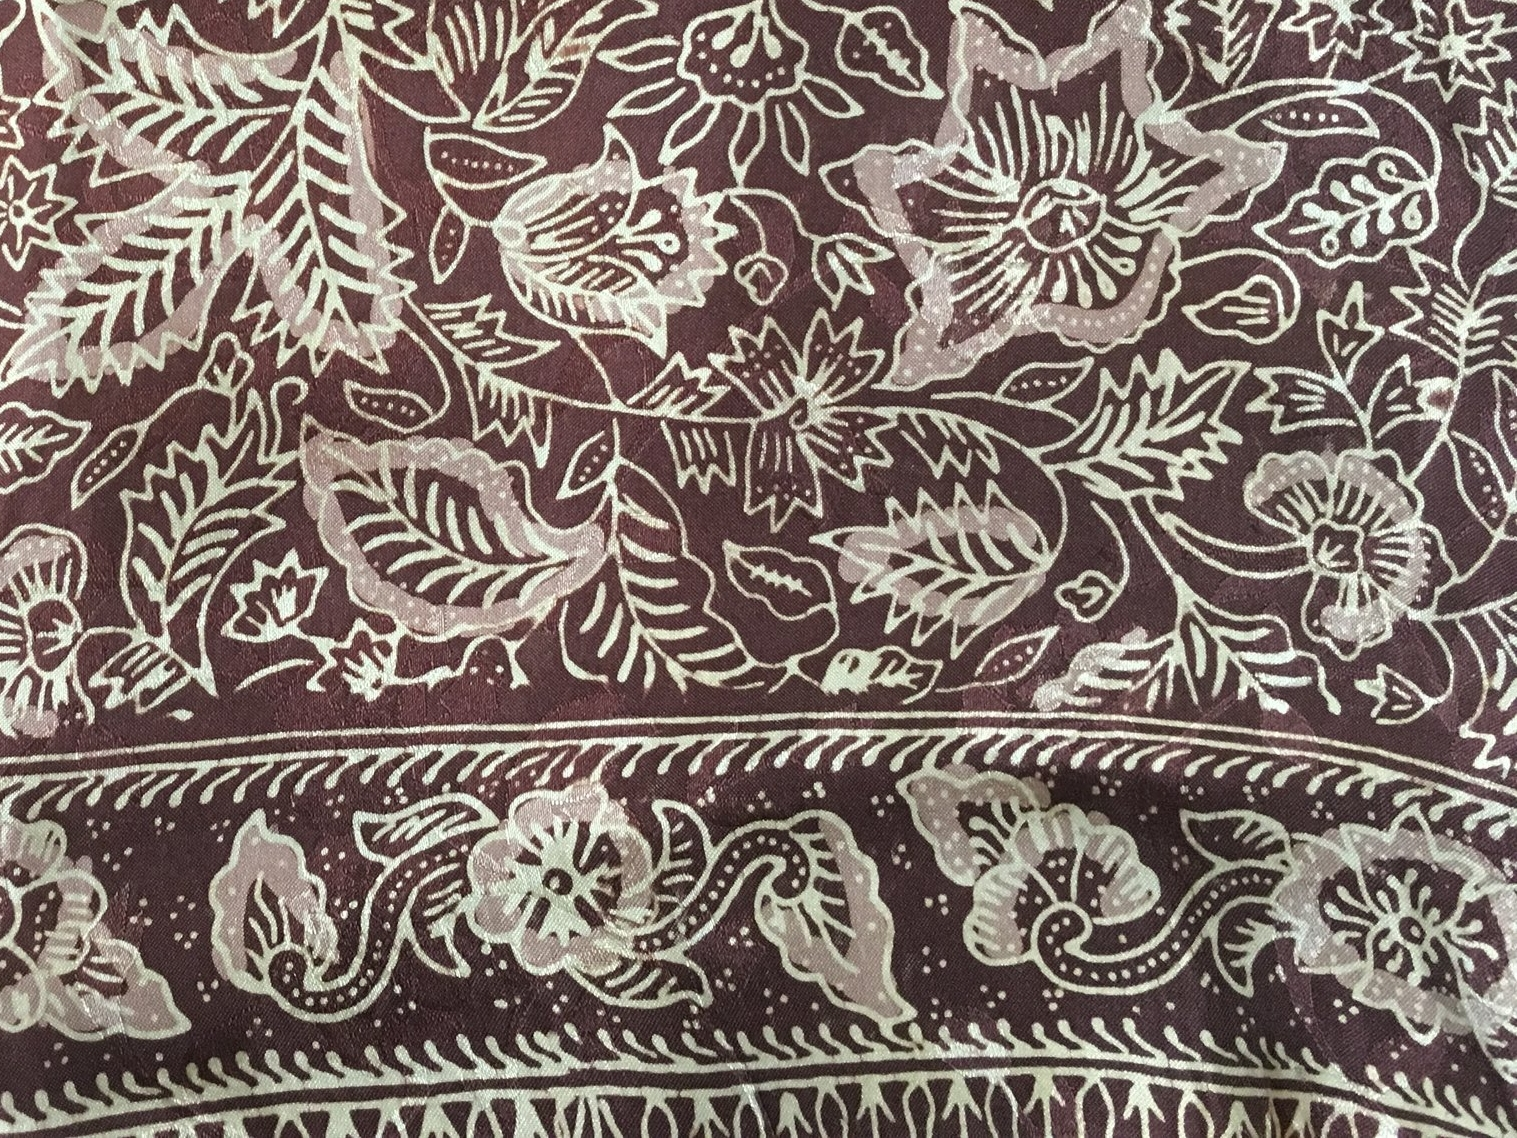 Silk batik from my own stash, bought while I lived in Jakarta and awaiting the inspiration to make it into something.